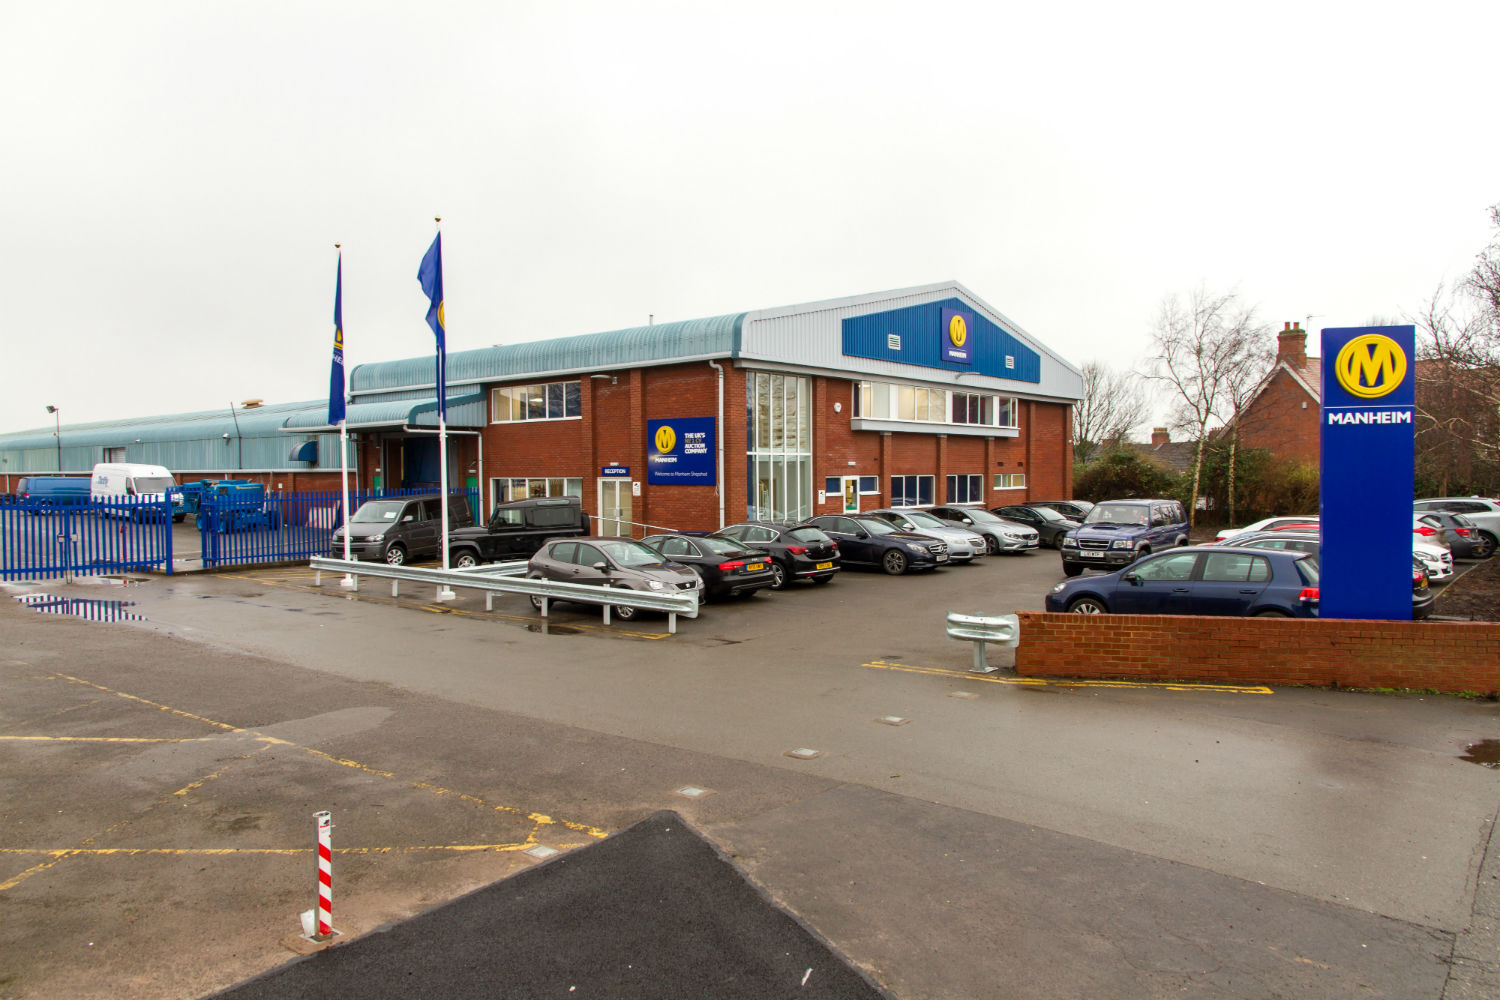 Manheim Shepshed - the entrance to the commercial vehicle auction centre